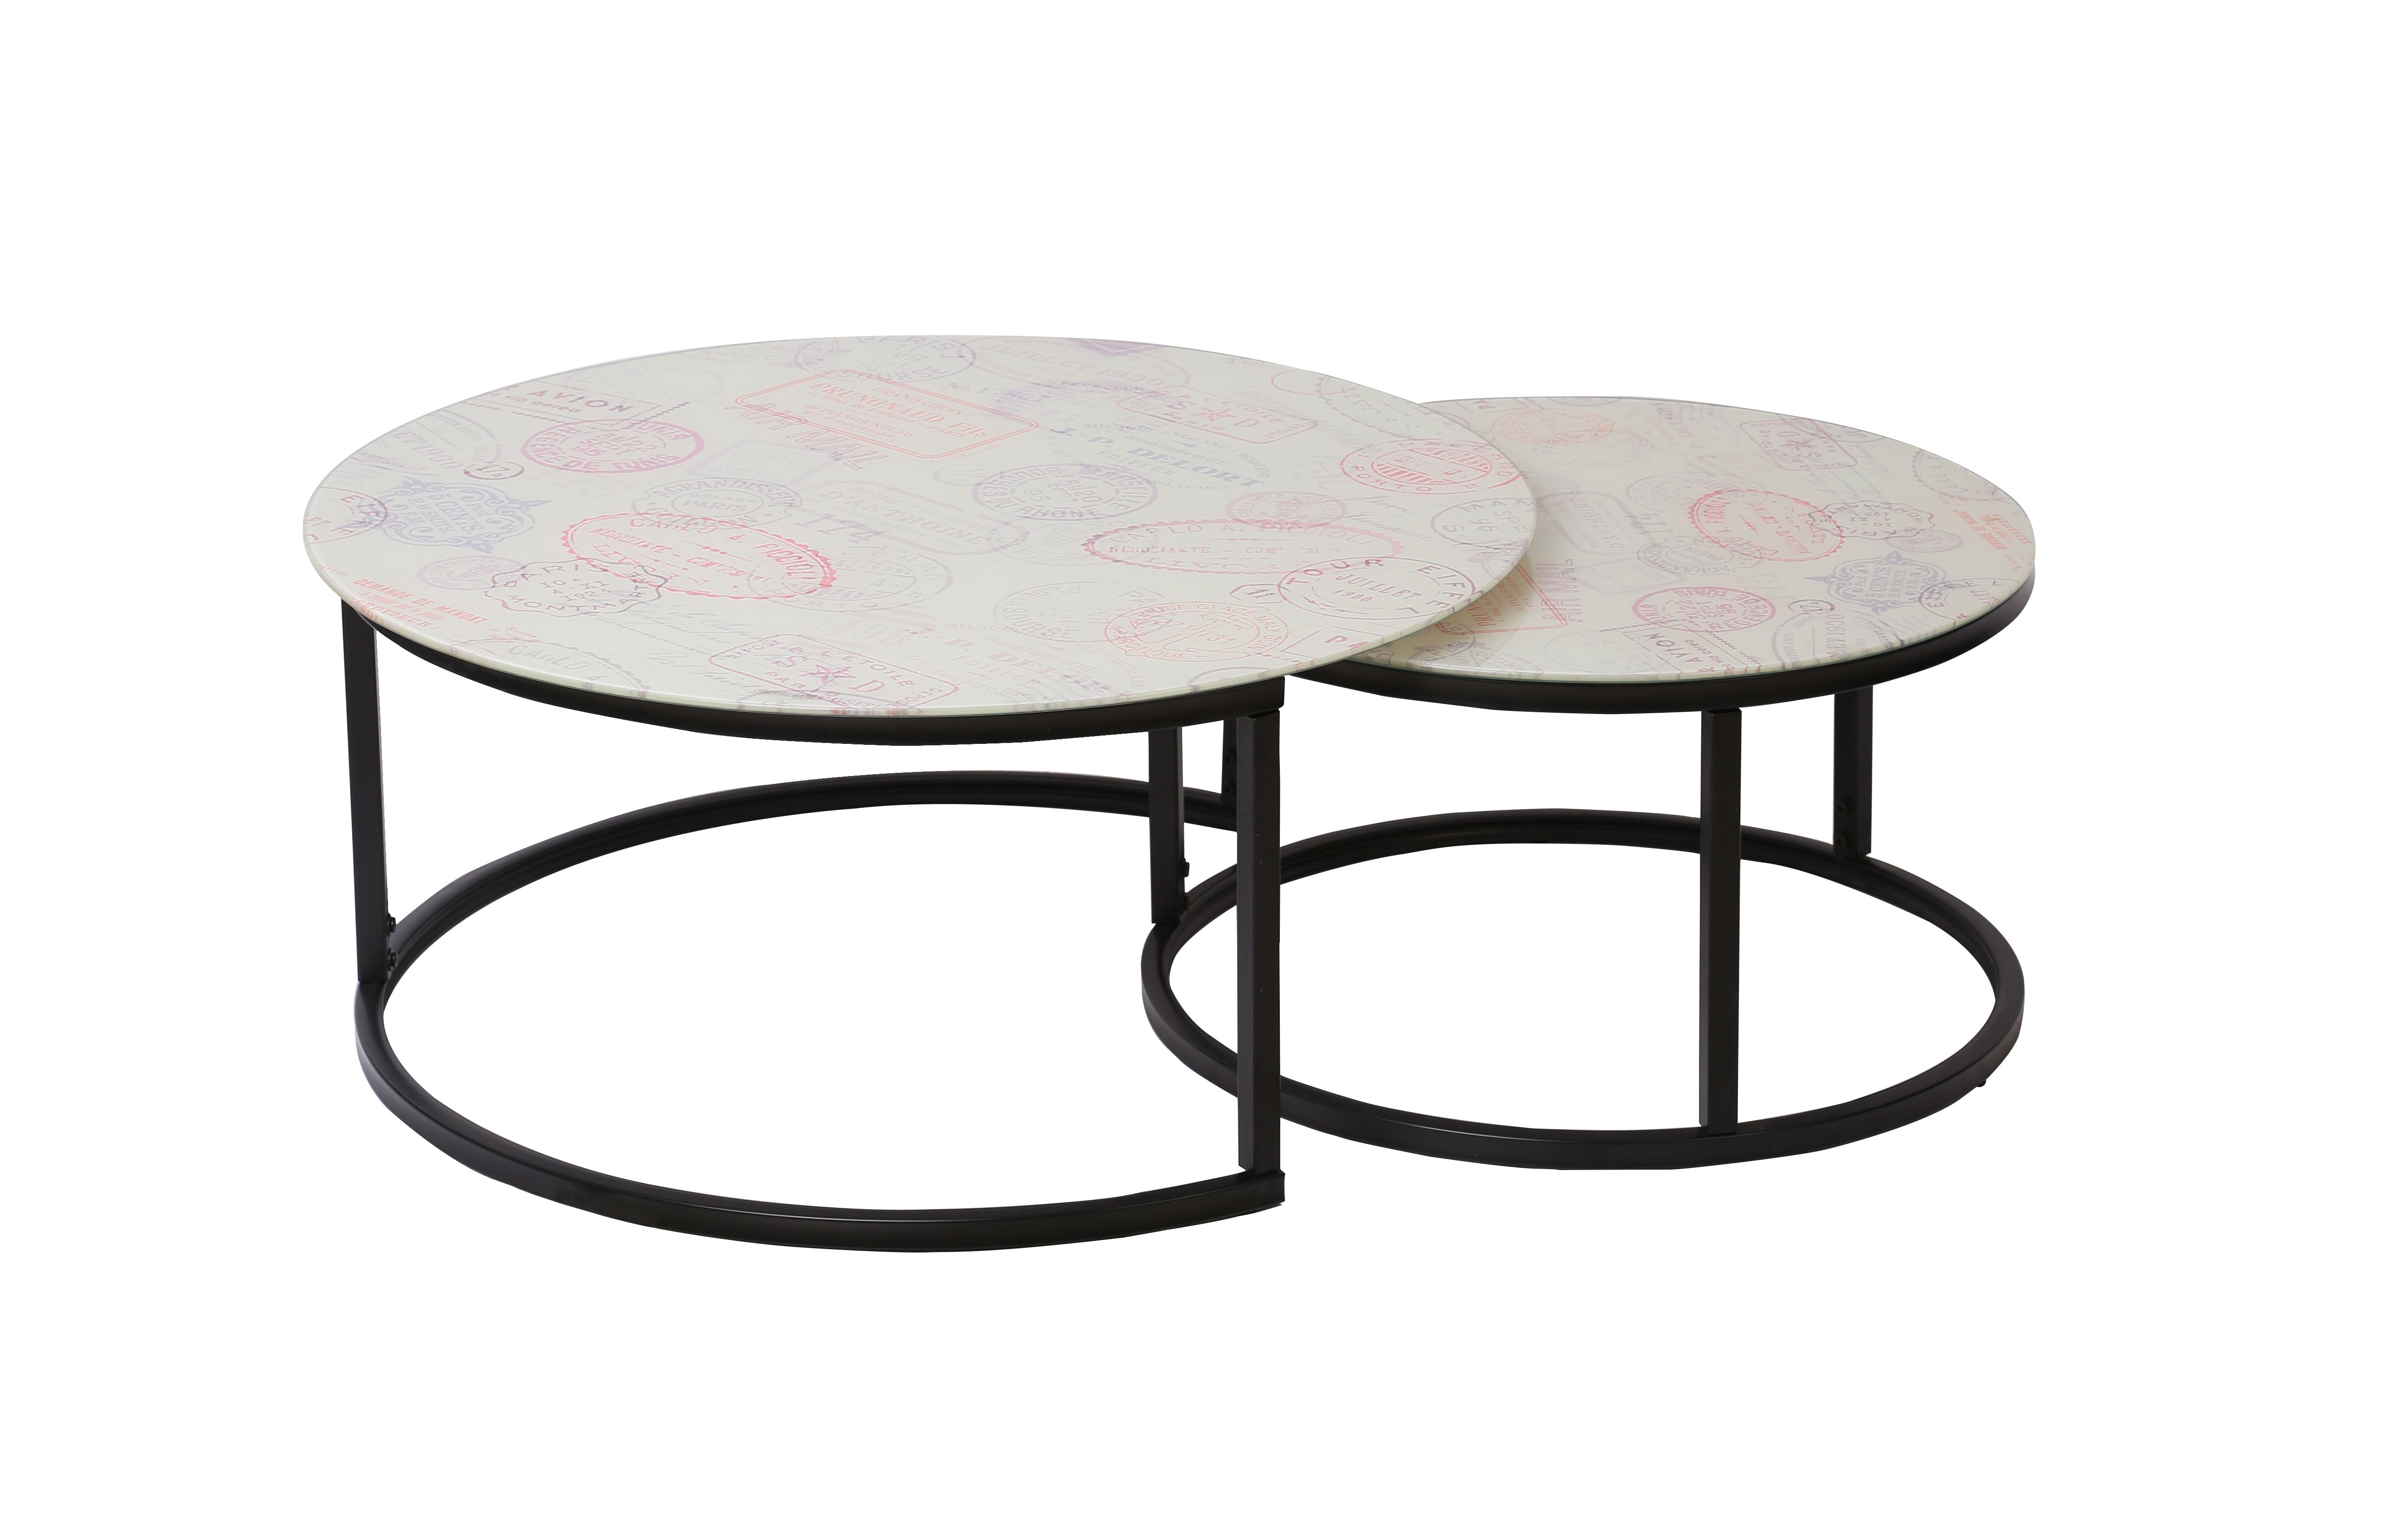 Round Shape Tempered Glass Coffee Table With Vintage Prints Coffee Table Table Nesting Tables [ 3265 x 5176 Pixel ]